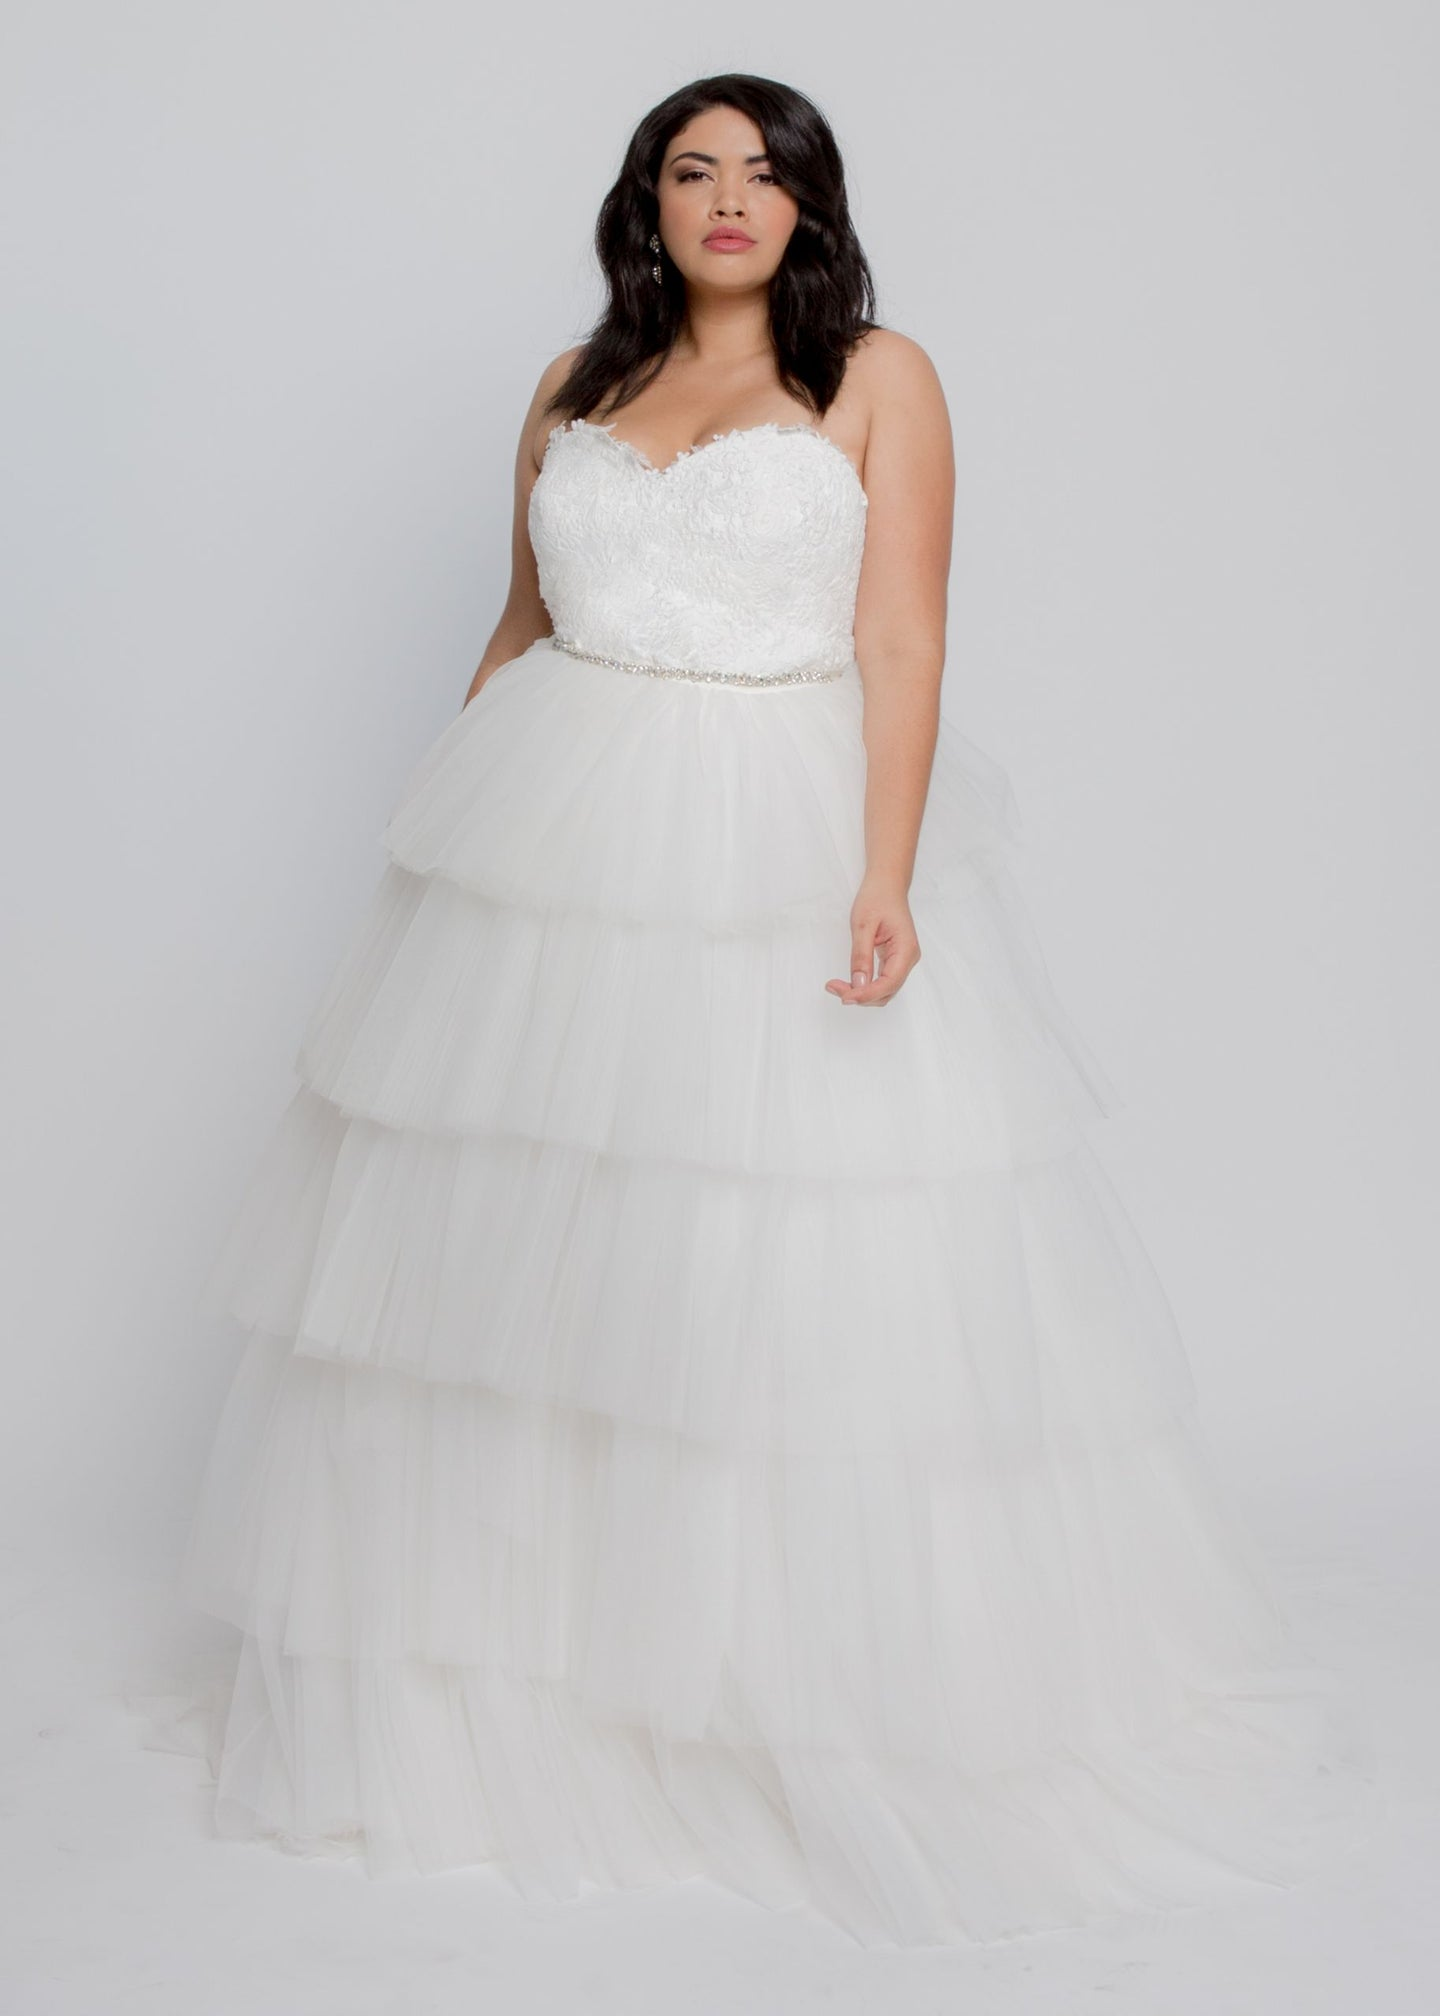 Gorgeous bridal gowns for all body shapes: plus size, curvy, or petite brides. Try on our wedding dresses at home. Size 0-30. Comfortable. Convenient. Fun. Lace or satin. Mermaid or A-line.  The Lillian gown brings pure romance with its lace sweetheart bustier and tulle tiered skirt. The sweetheart features cut out ivory lace, leading layers of perfectly light and airy tulle.